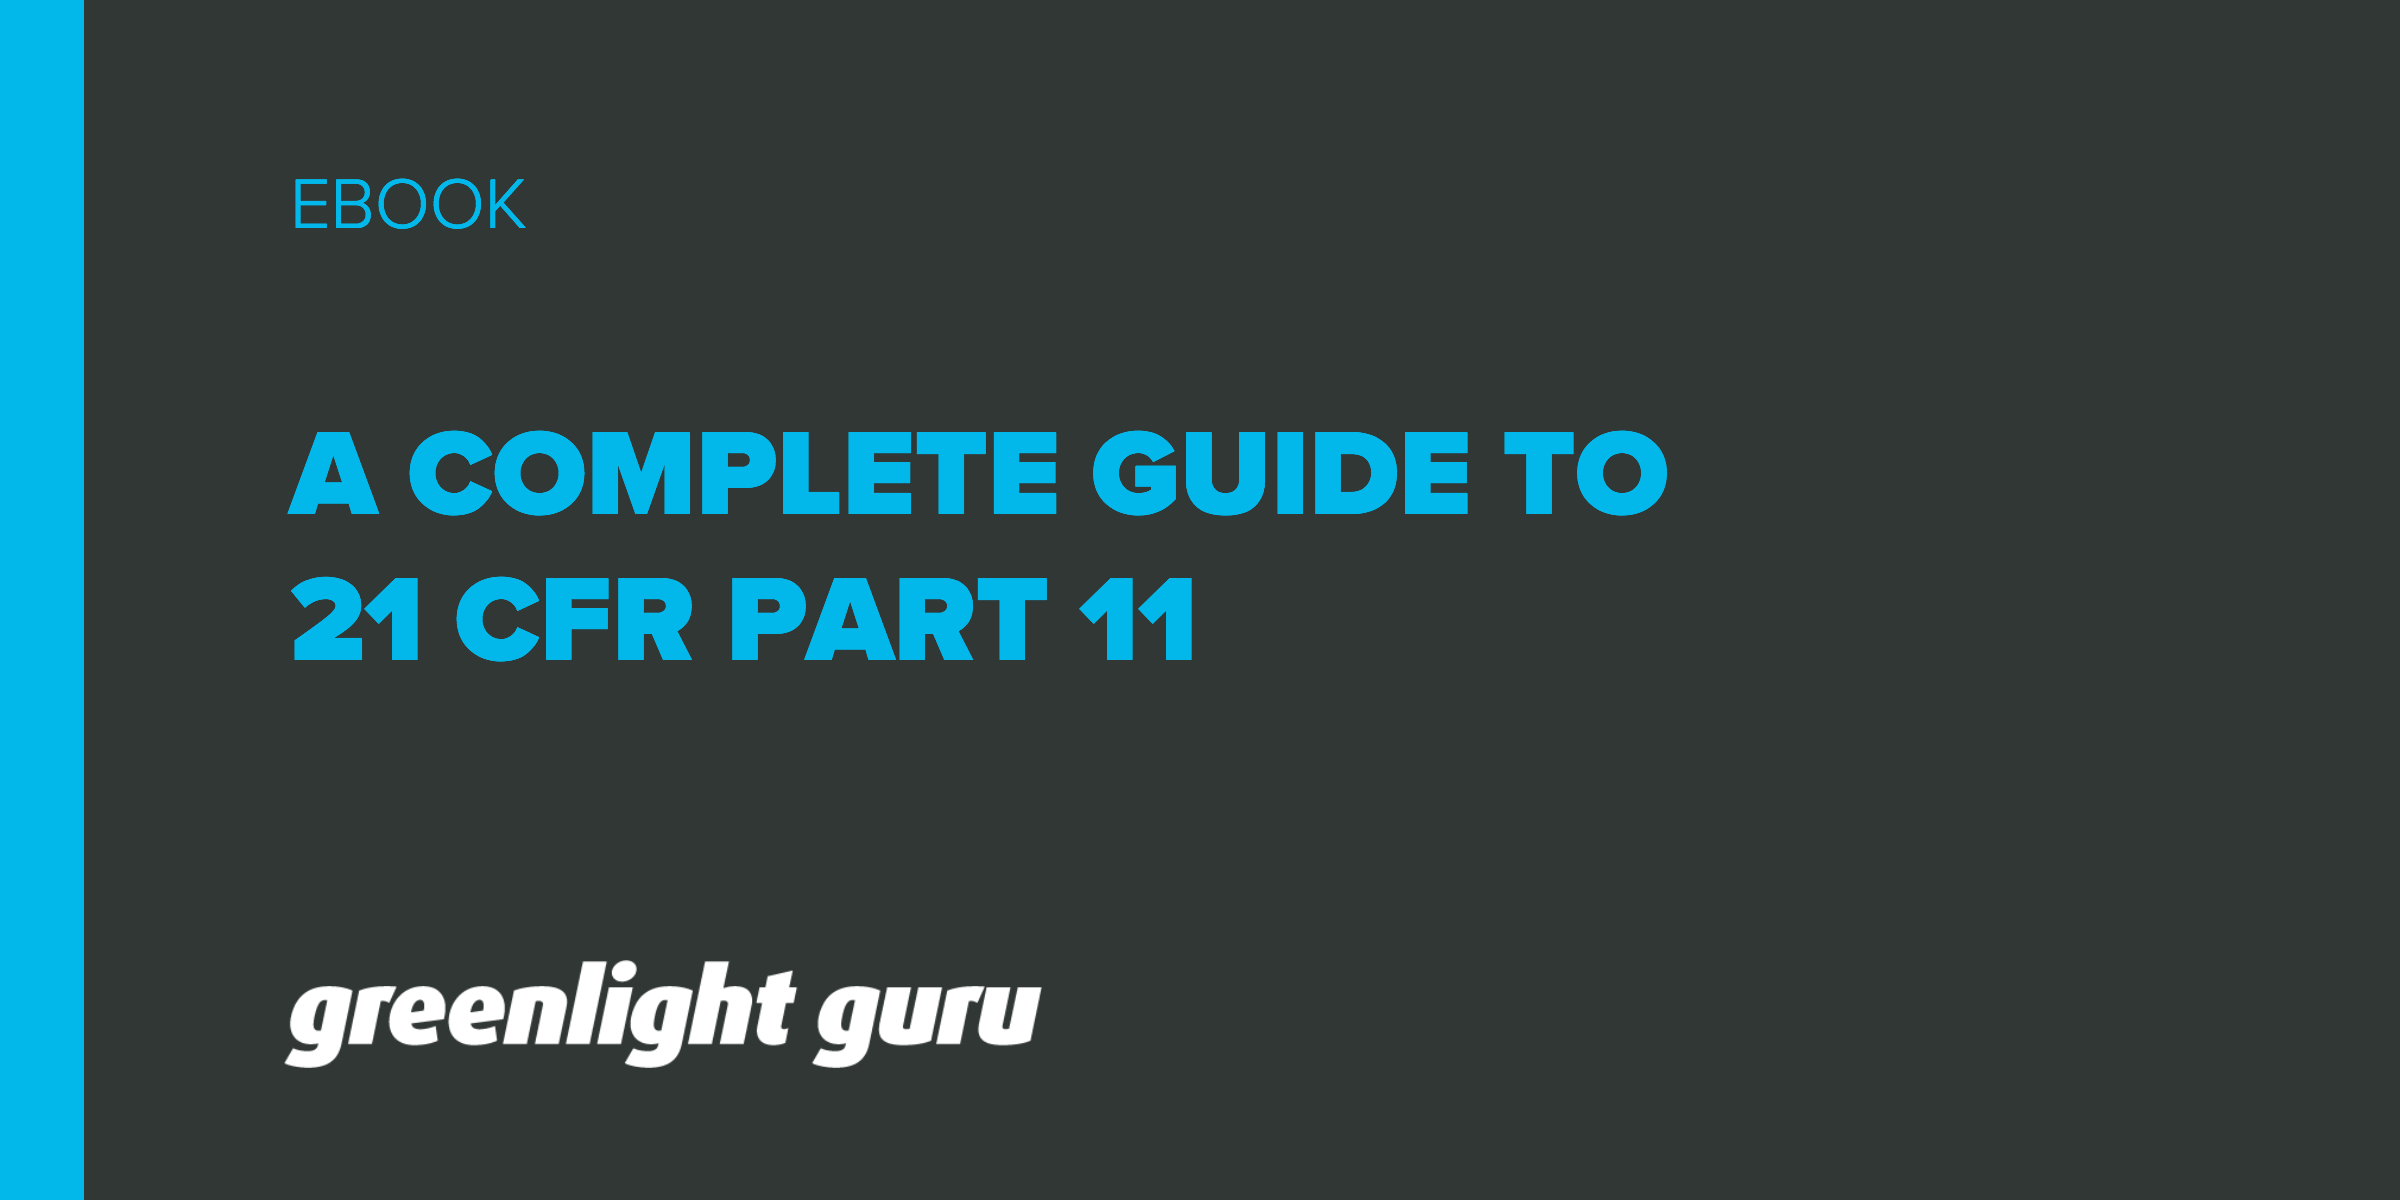 21 CFR Part 11: A Complete Guide - Featured Image